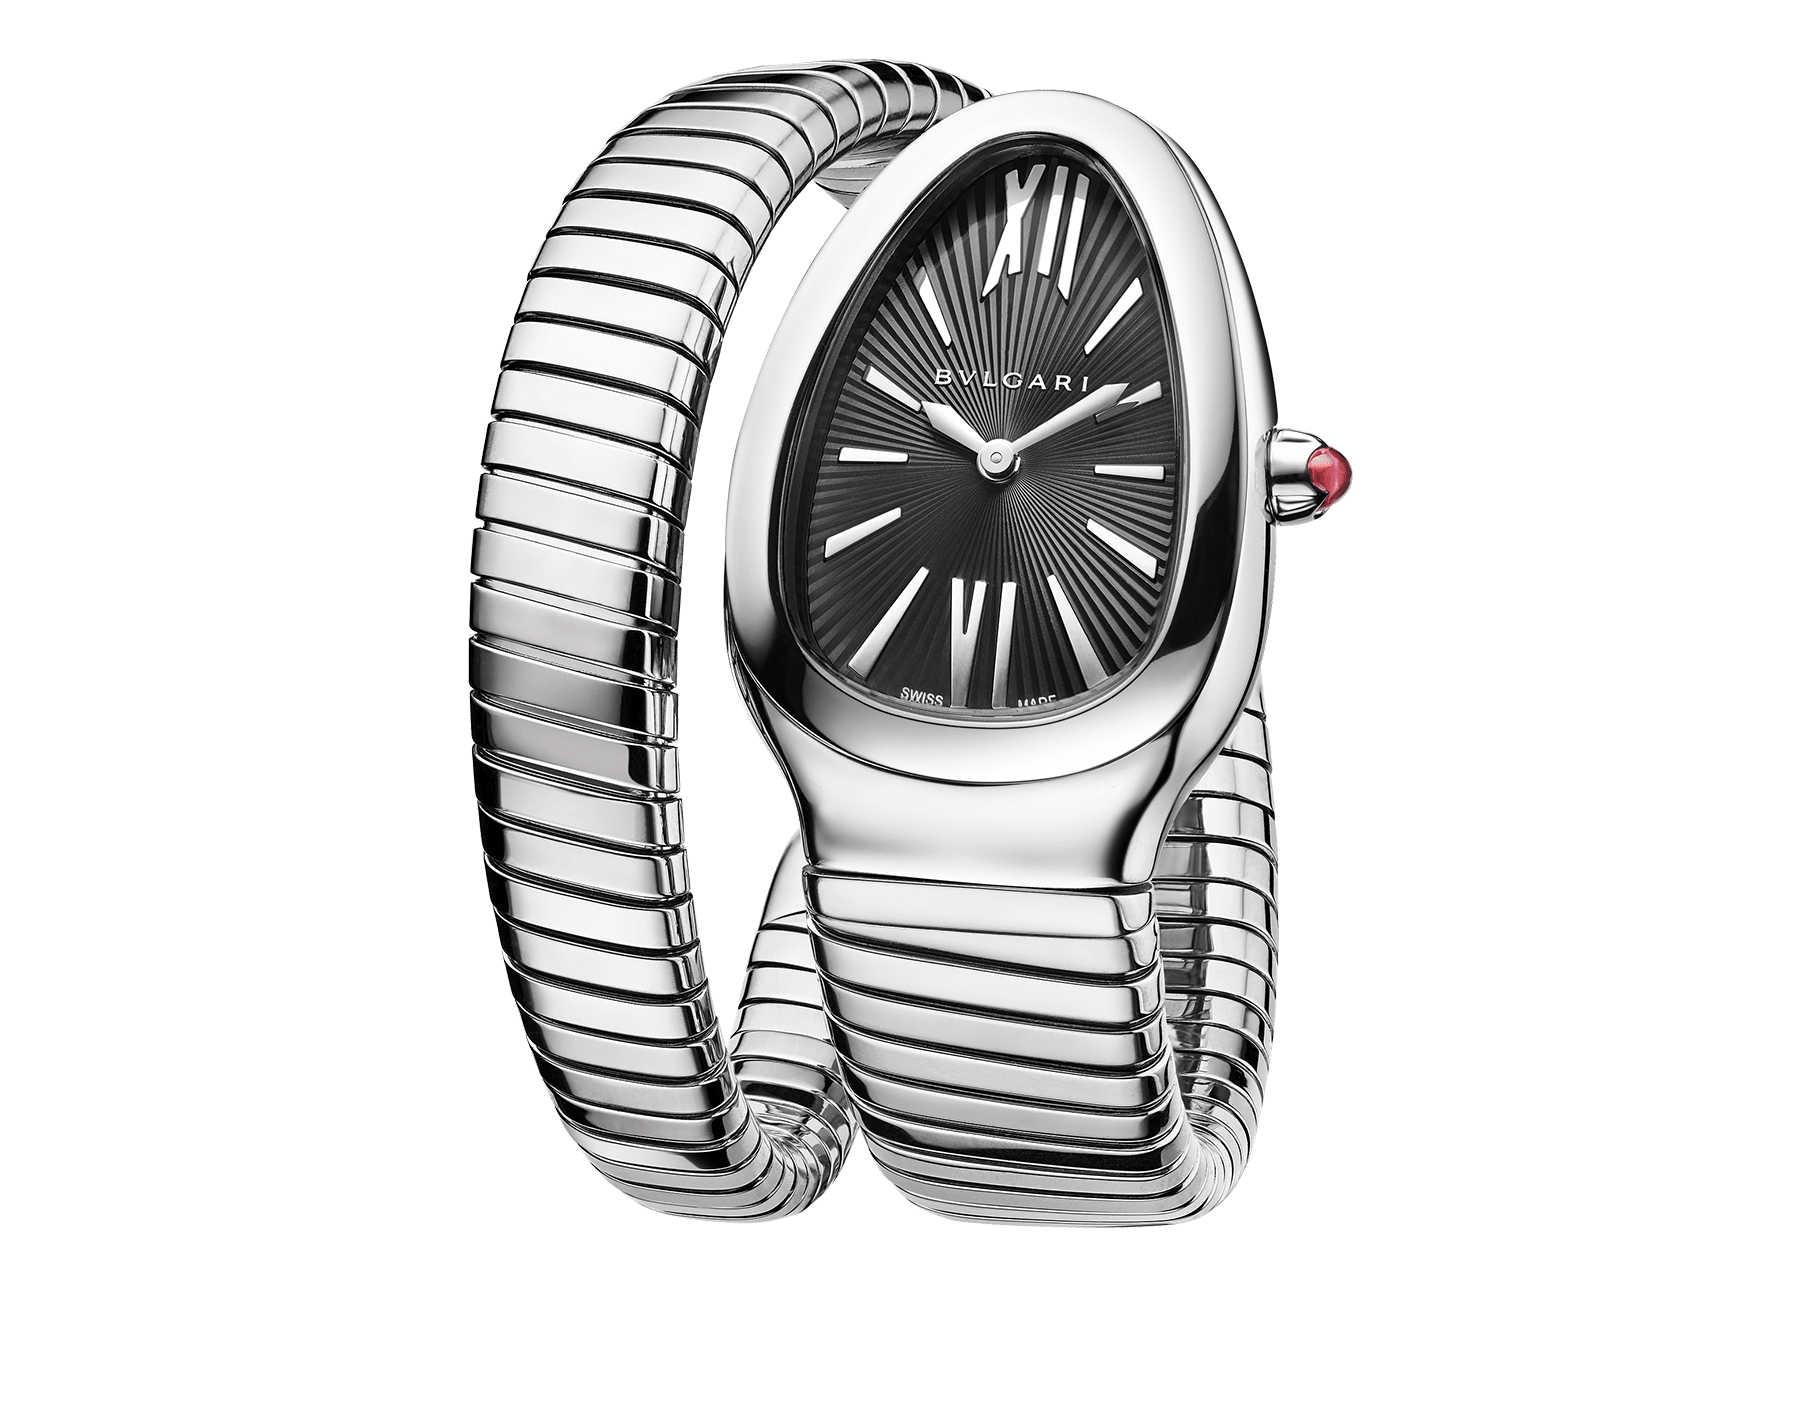 Serpenti Tubogas single spiral watch in stainless steel case and bracelet, with black opaline dial. 102824 image 1